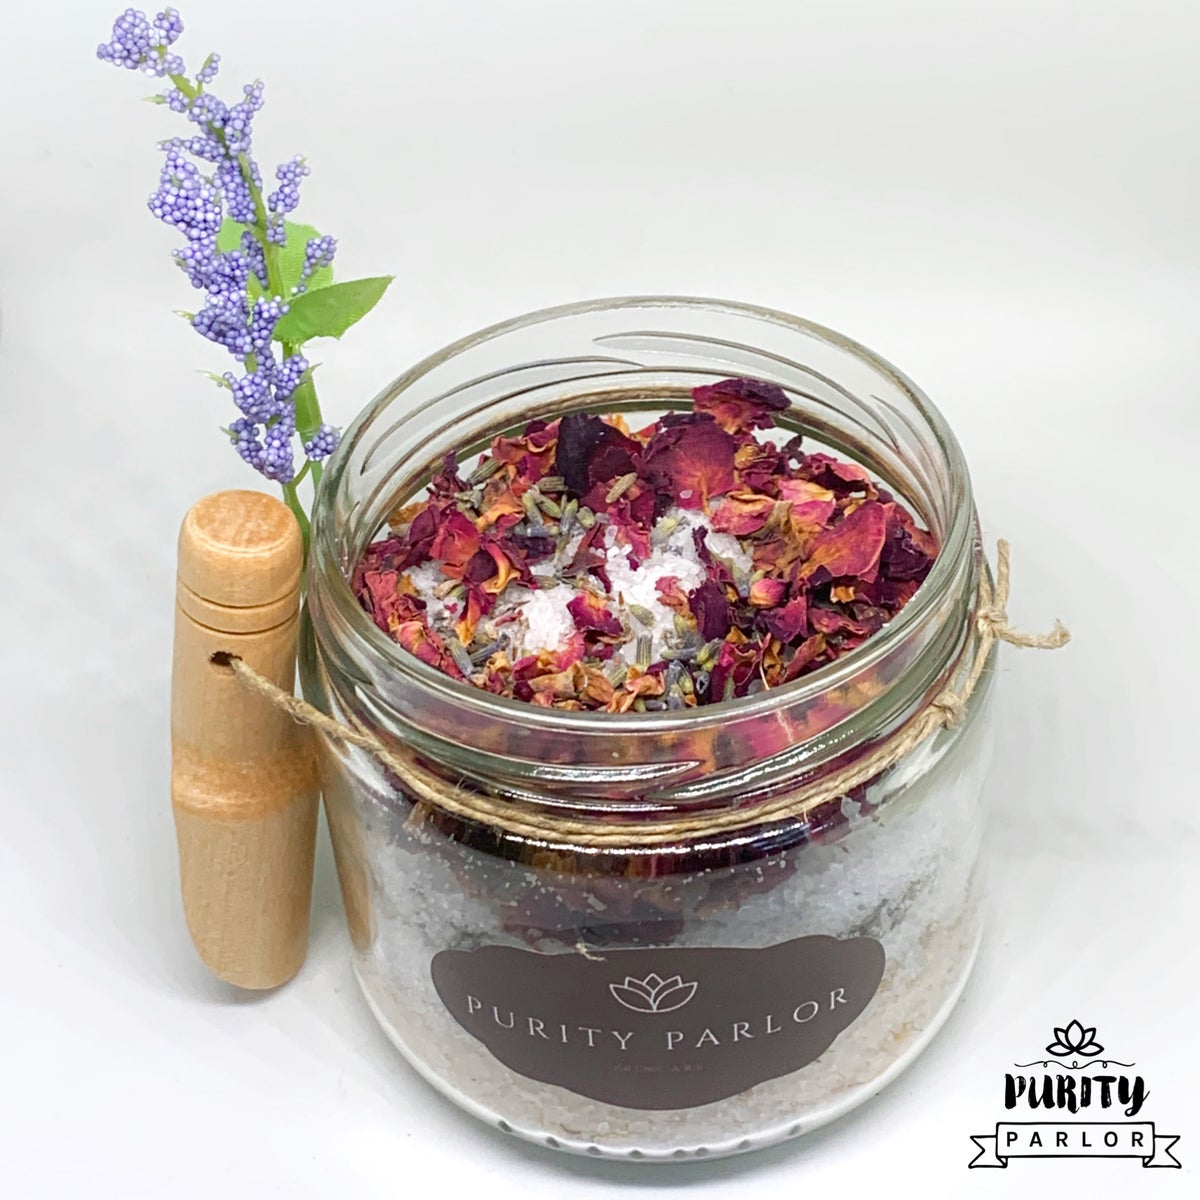 Floral Salt Treatment: Scent Lavender and Chamomile